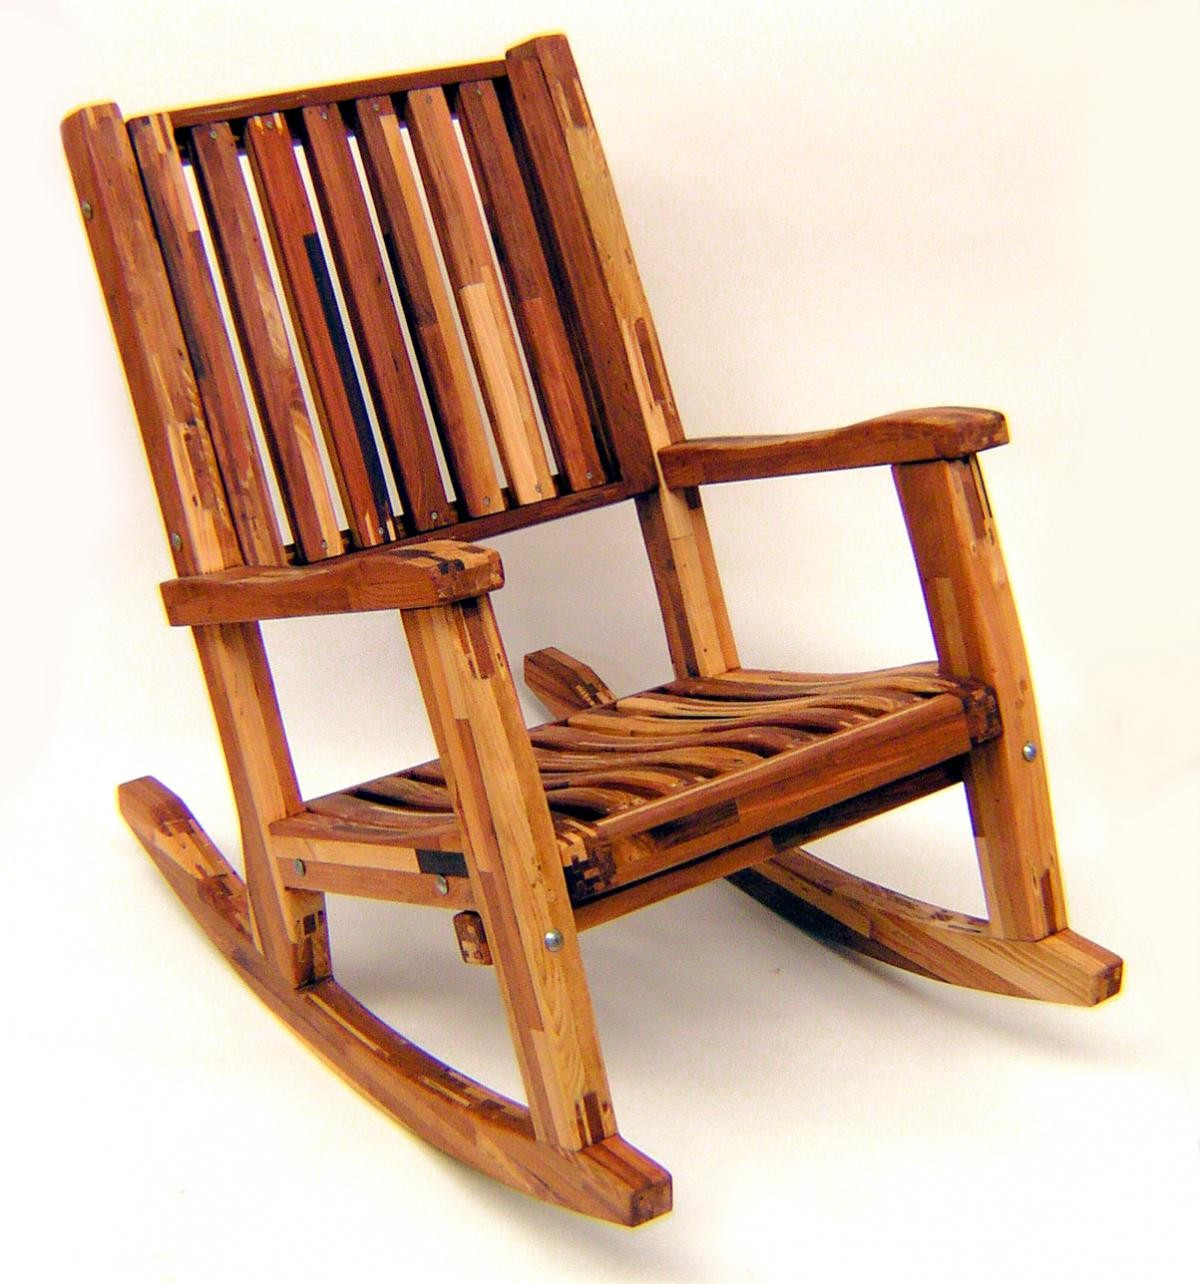 wooden rocking chair cushion chair pads cushions. Black Bedroom Furniture Sets. Home Design Ideas